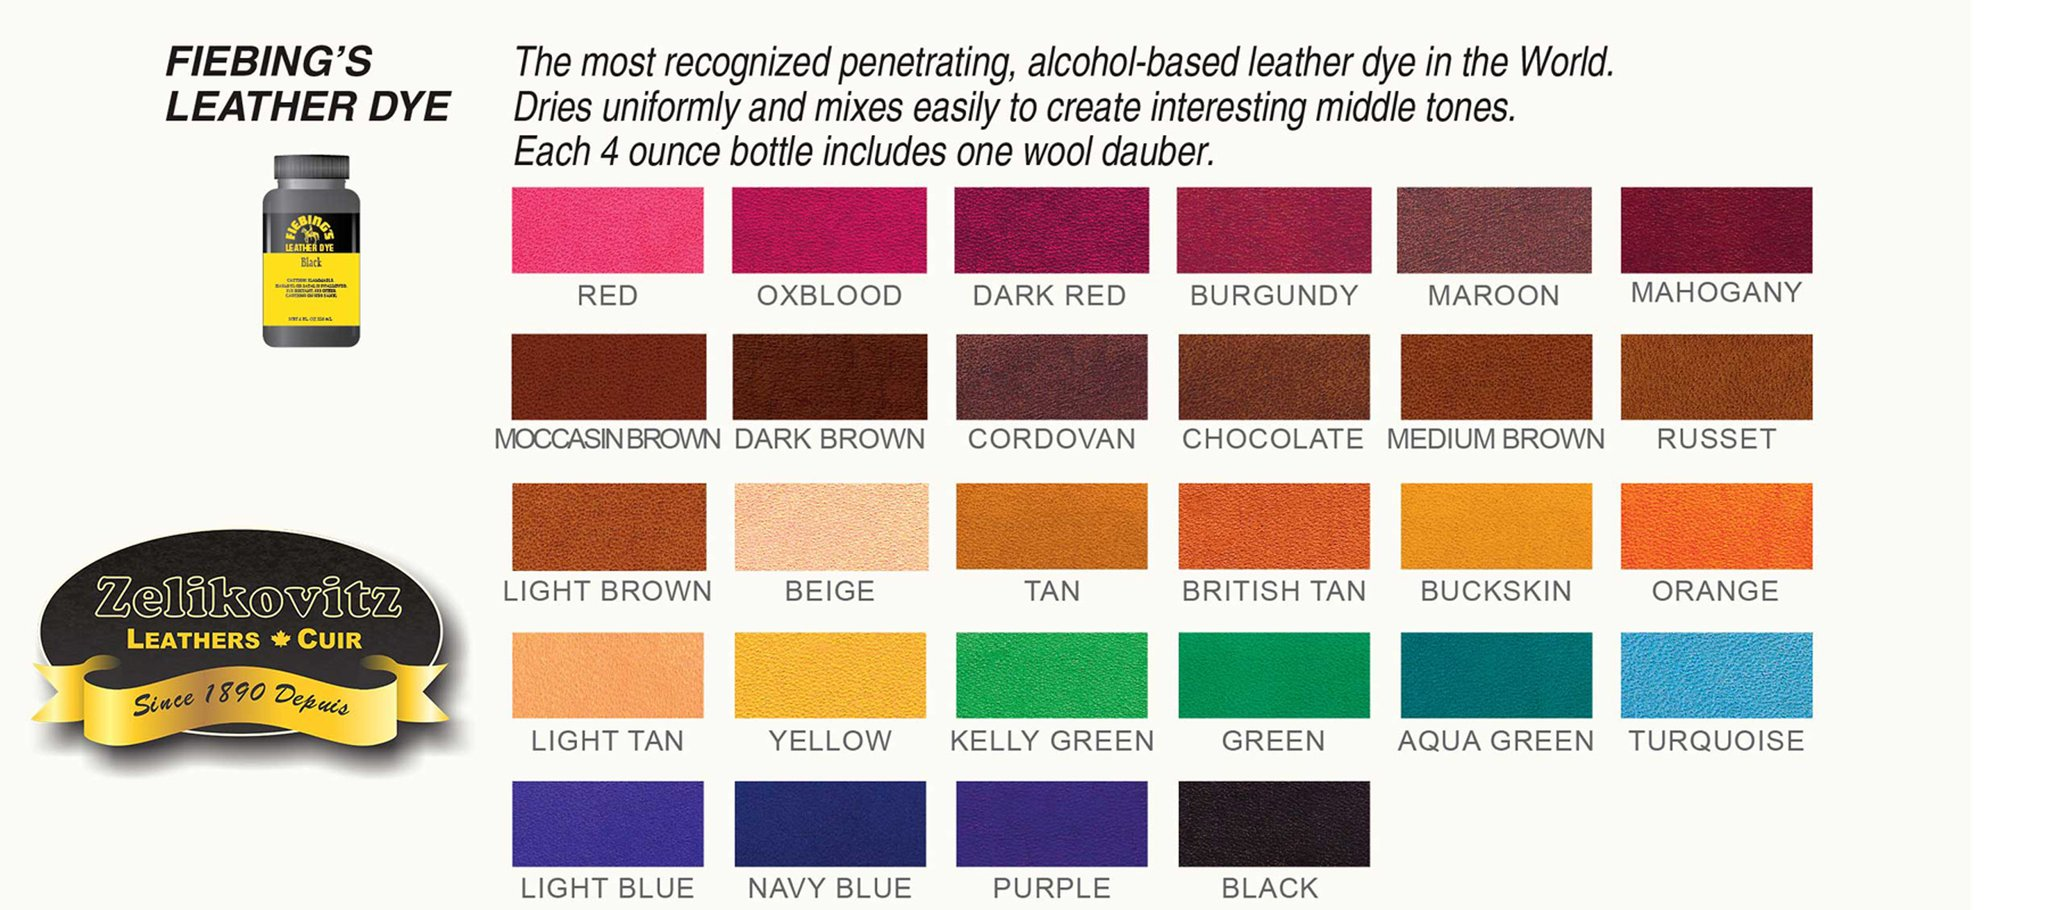 fiebing 39 s leather dye 28 colors 4 ounce bottle fiebings fiebing ebay. Black Bedroom Furniture Sets. Home Design Ideas